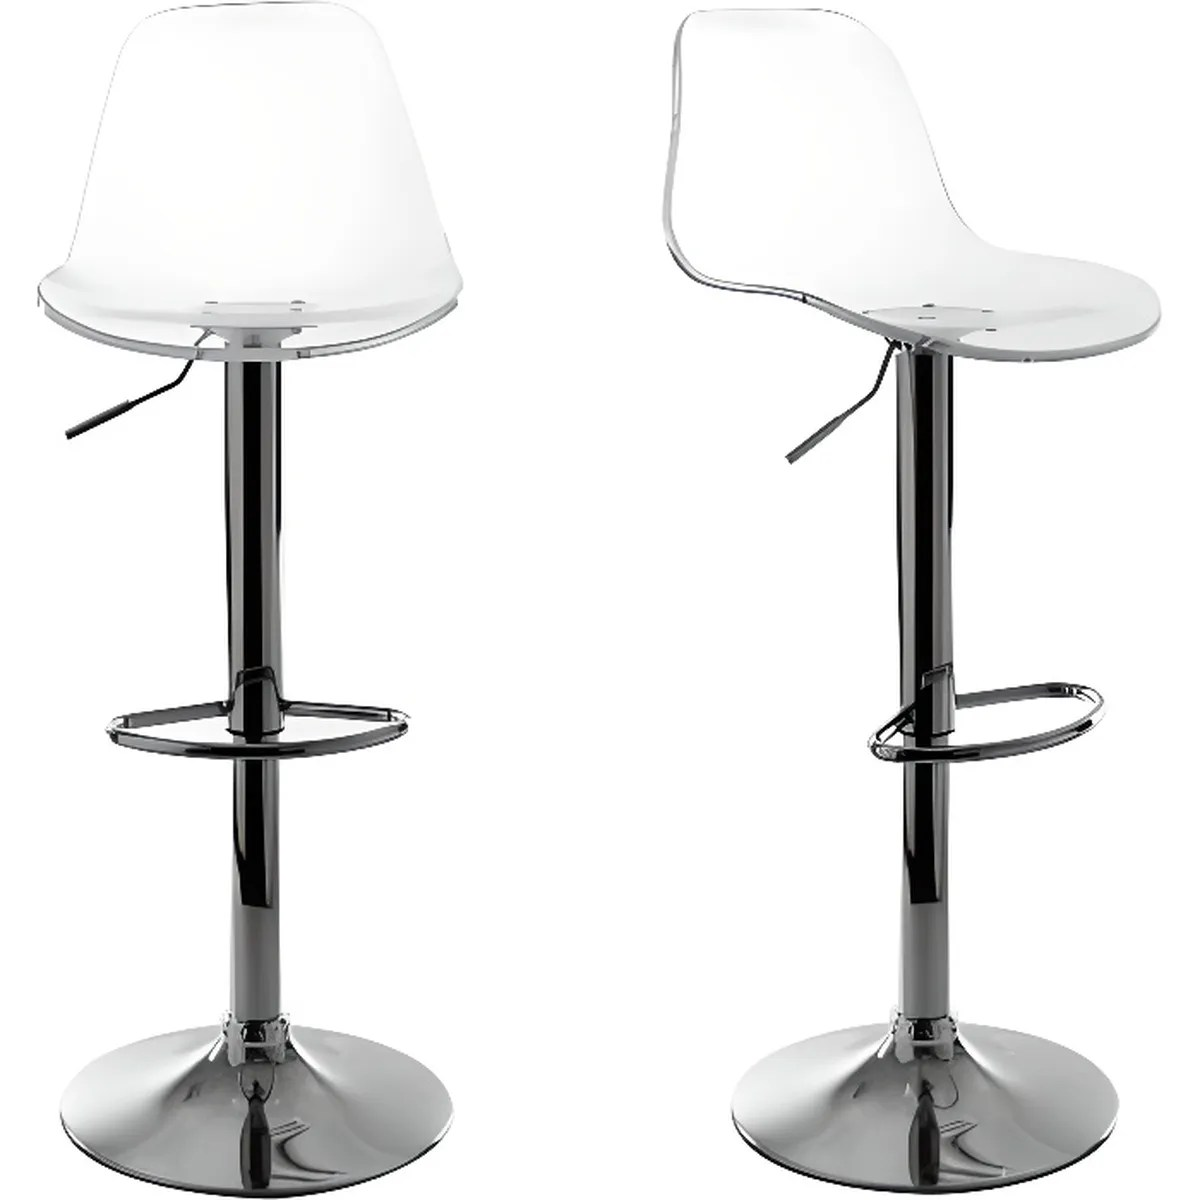 Tabouret De Bar Plastique Transparent Miliboo Tabouret De Bar Design Transparent Lot De 2 Galileo